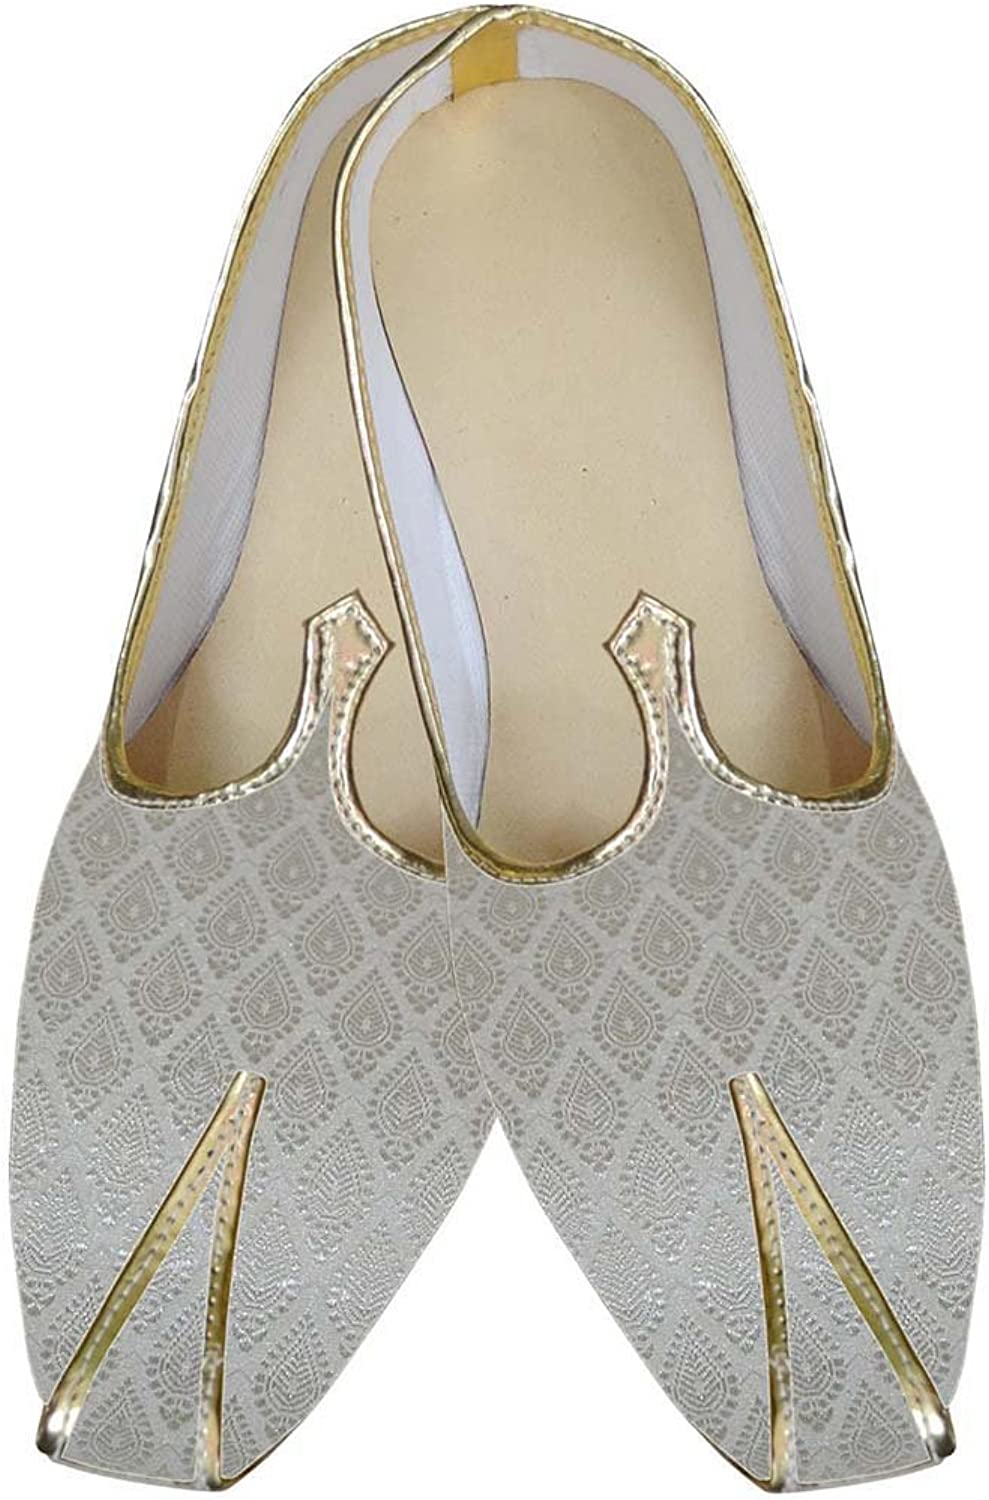 INMONARCH Mens Ivory Indian Wedding shoes MJ0106